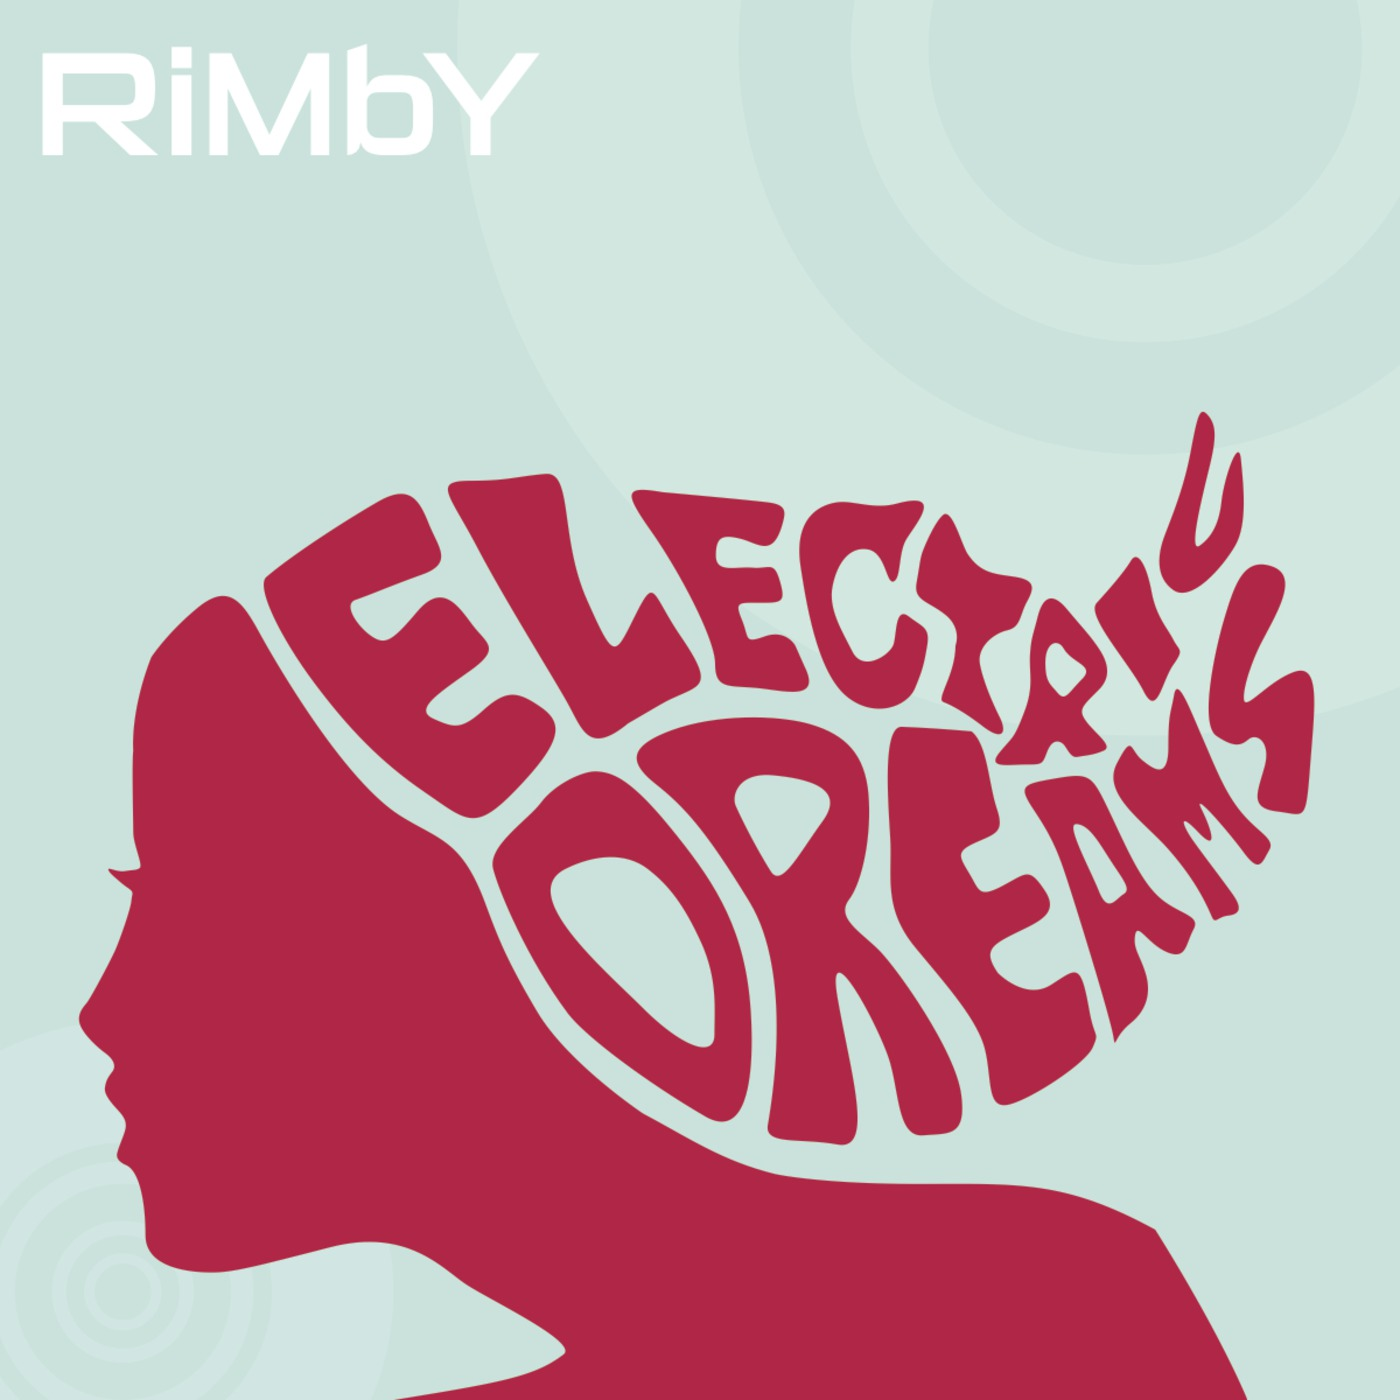 RiMbY's ELeCtRiC DrEaMS